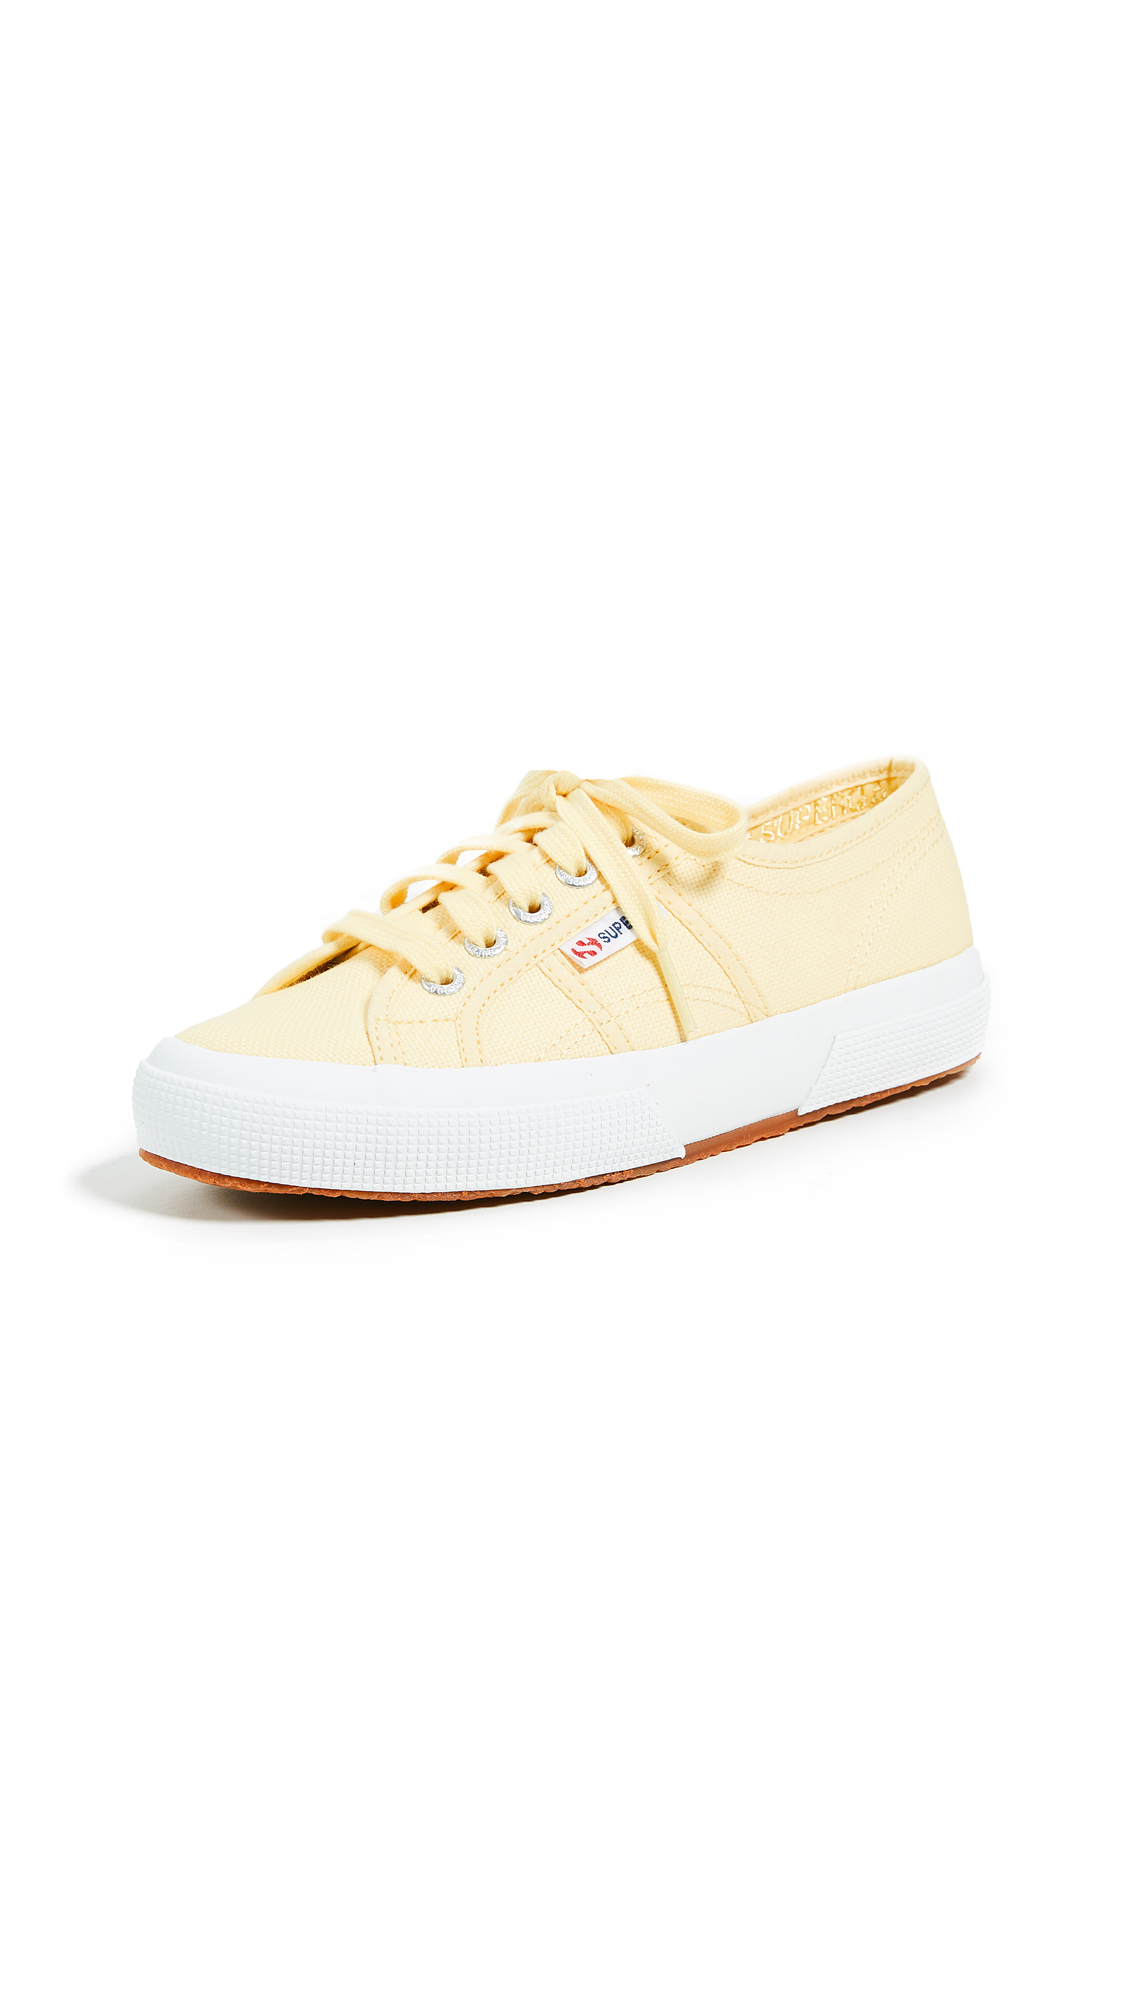 Superga 2750 Cotu Classic Sneakers - Yellow